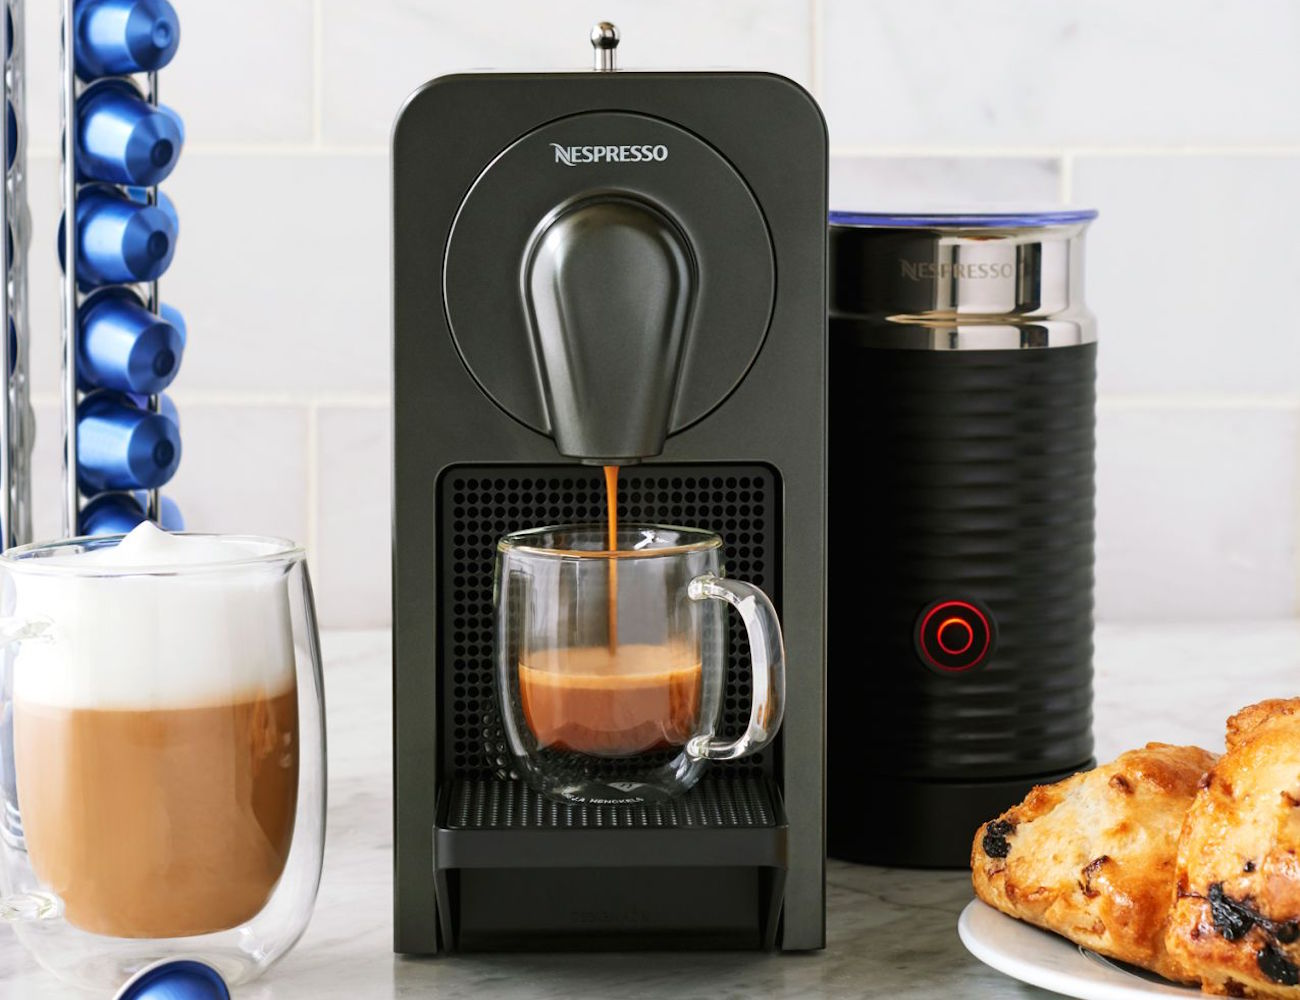 The best affordable espresso machines you can buy in 2019 - Nespresso Prodigio 3